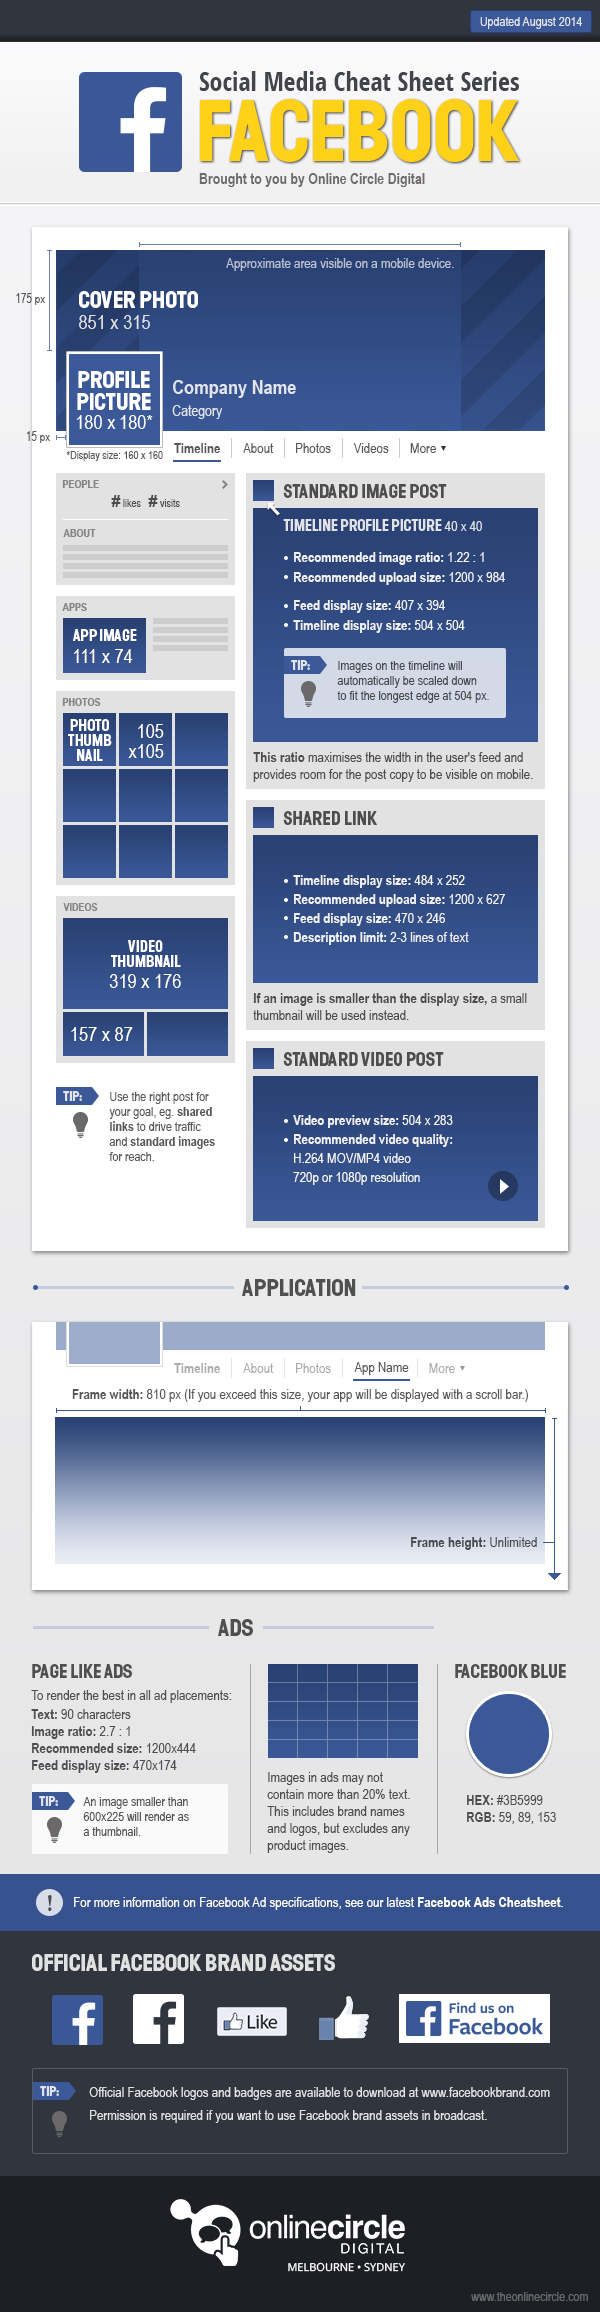 facebook-sizes-dimentions-infographic